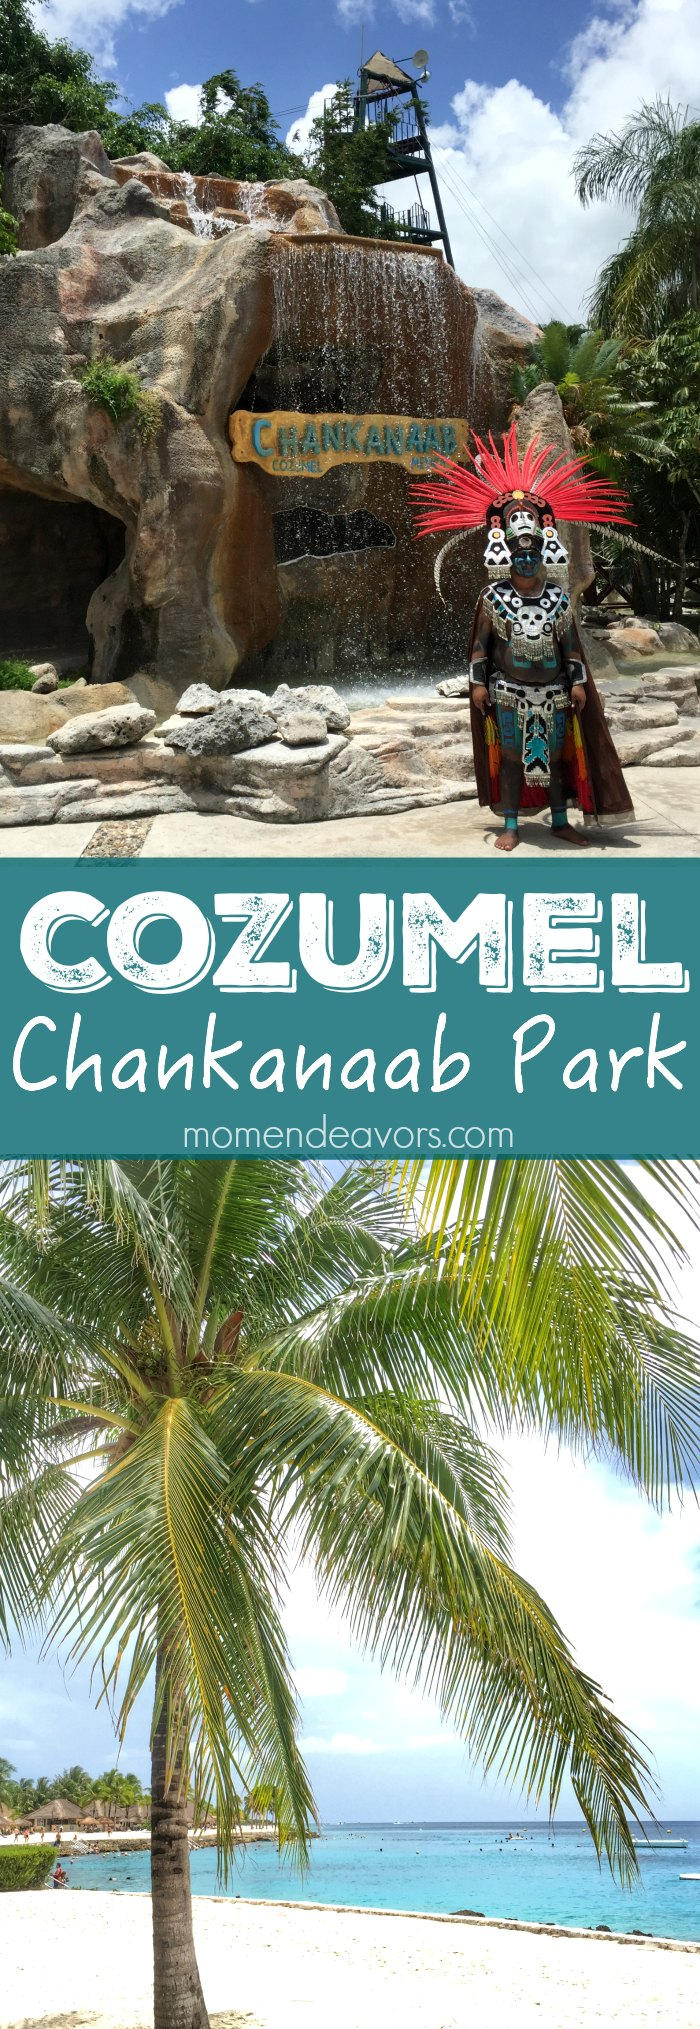 Cozumel's Chankanaab Beach Adventure Park